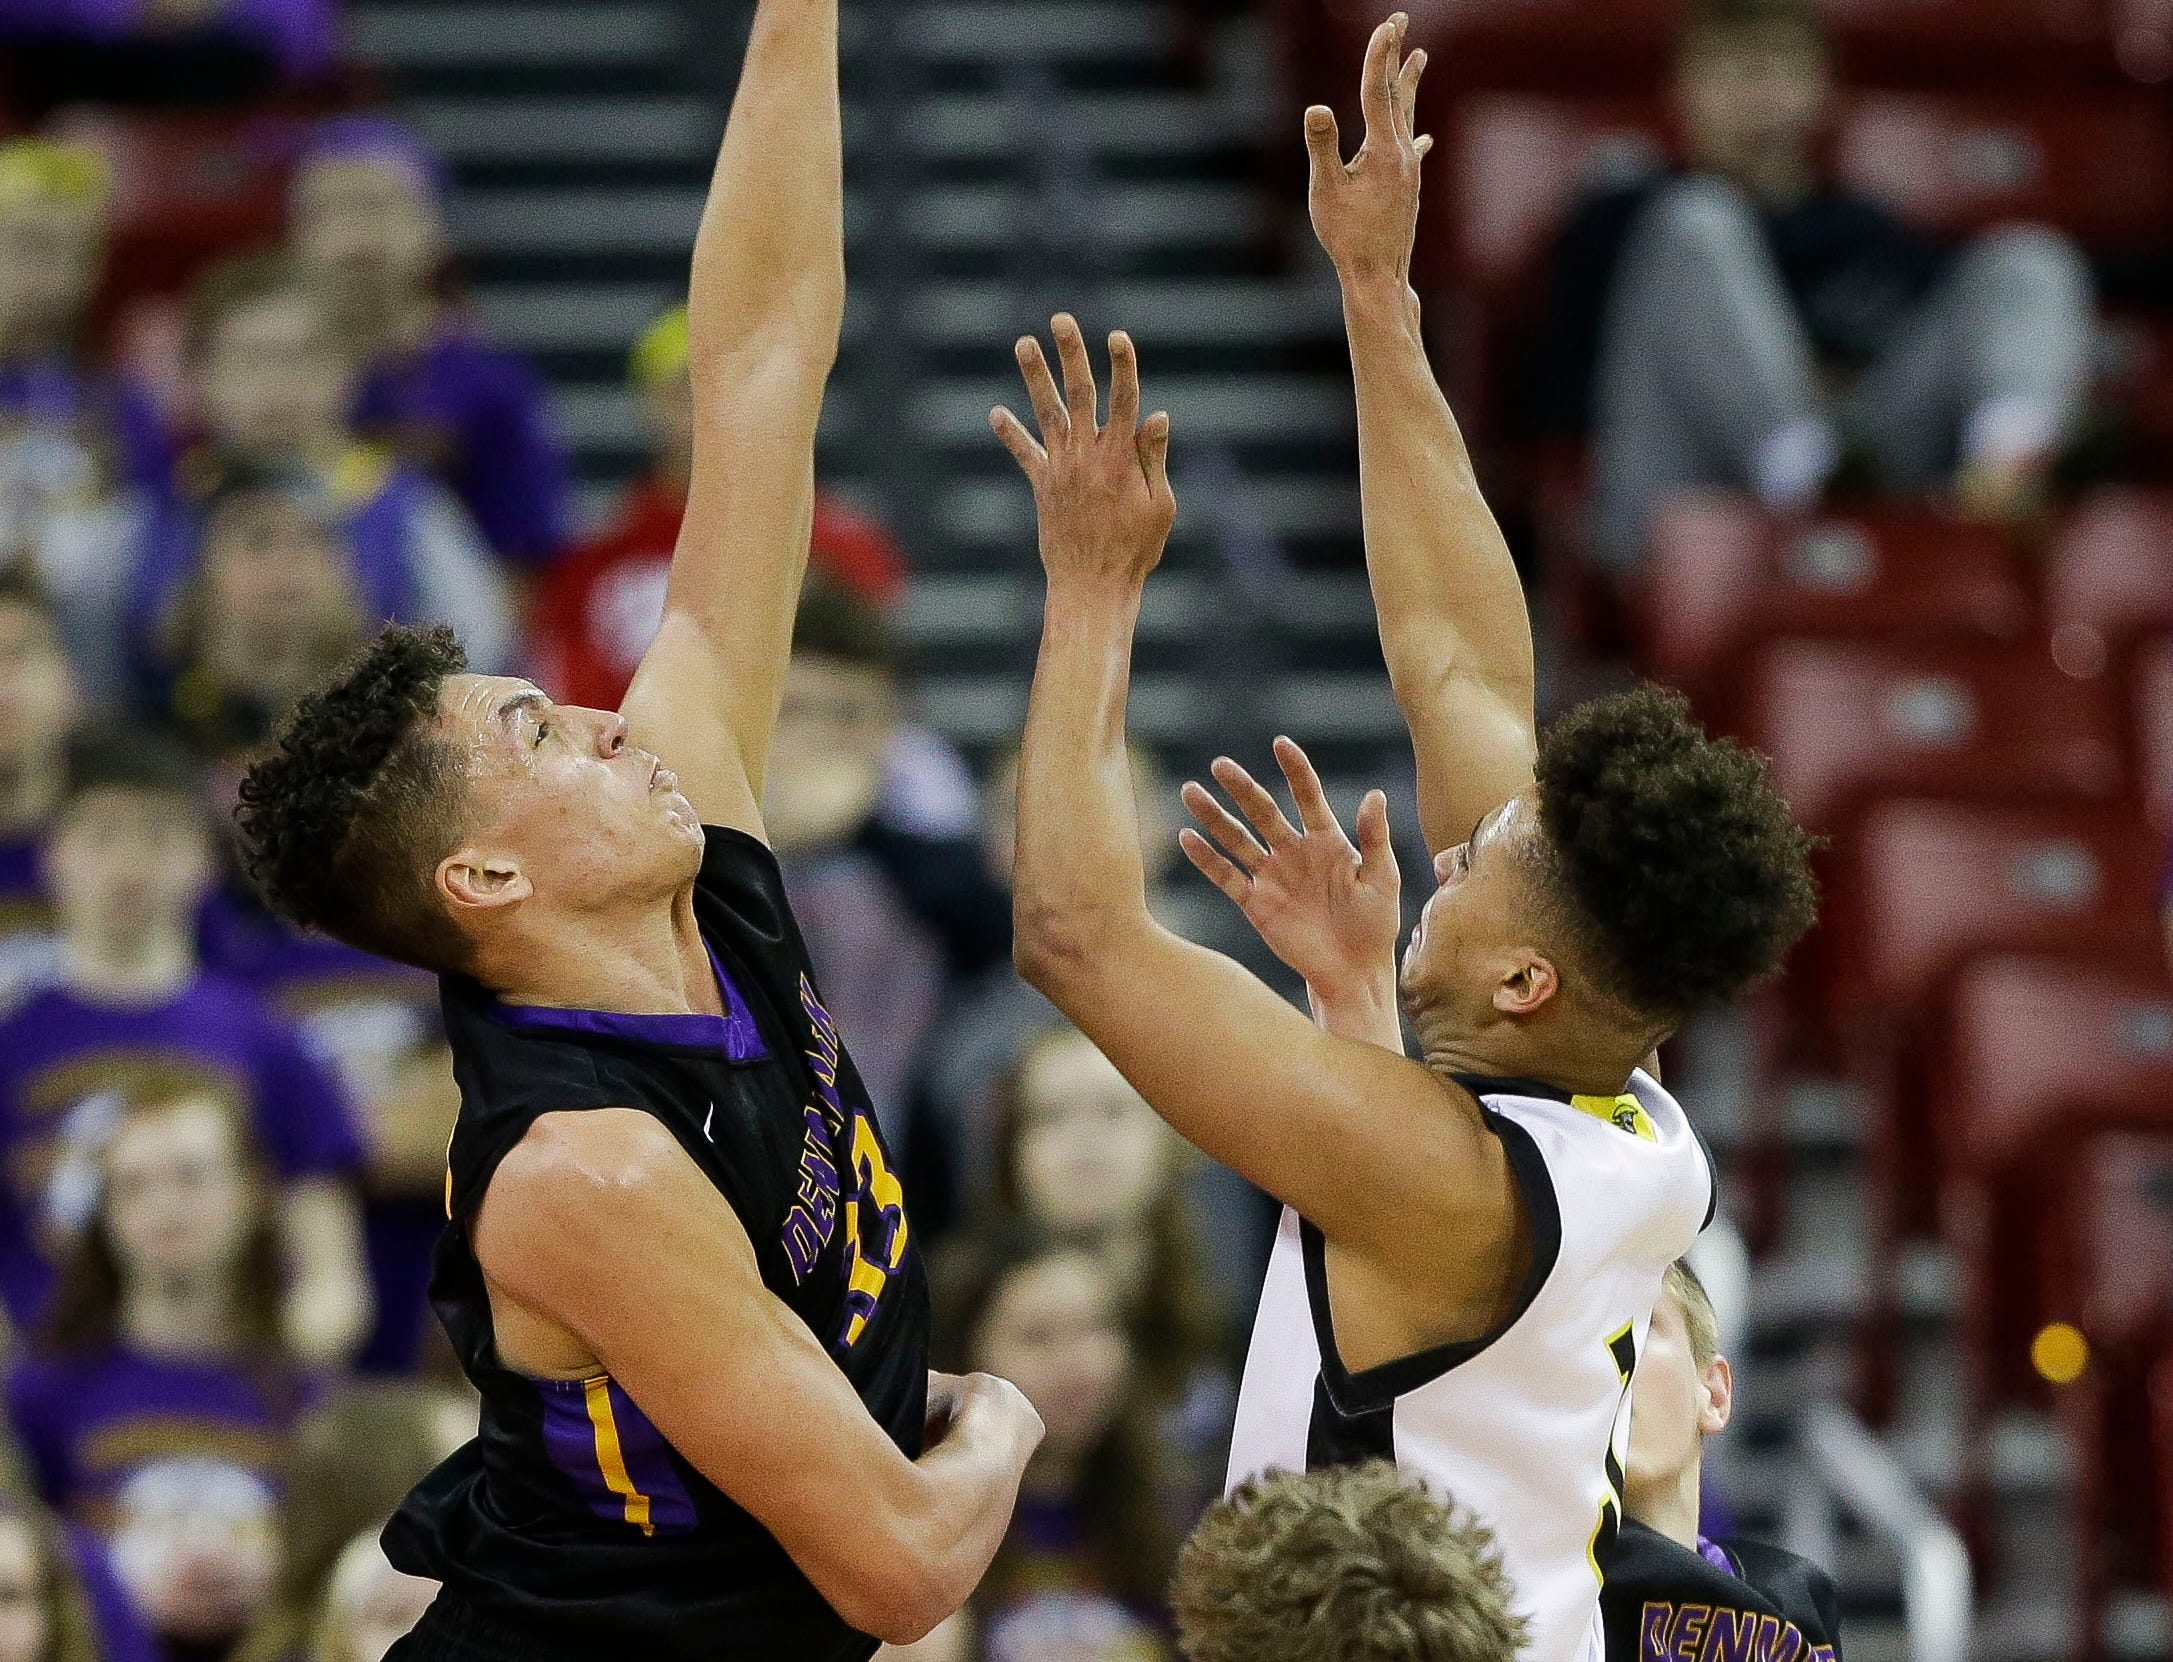 Denmark High School's Patrick Suemnick (33) blocks a shot by Waupun High School's Quintin Winterfeldt (3) in a Division 3 boys basketball state semifinal on Thursday, March 14, 2019, at the Kohl Center in Madison, Wis.